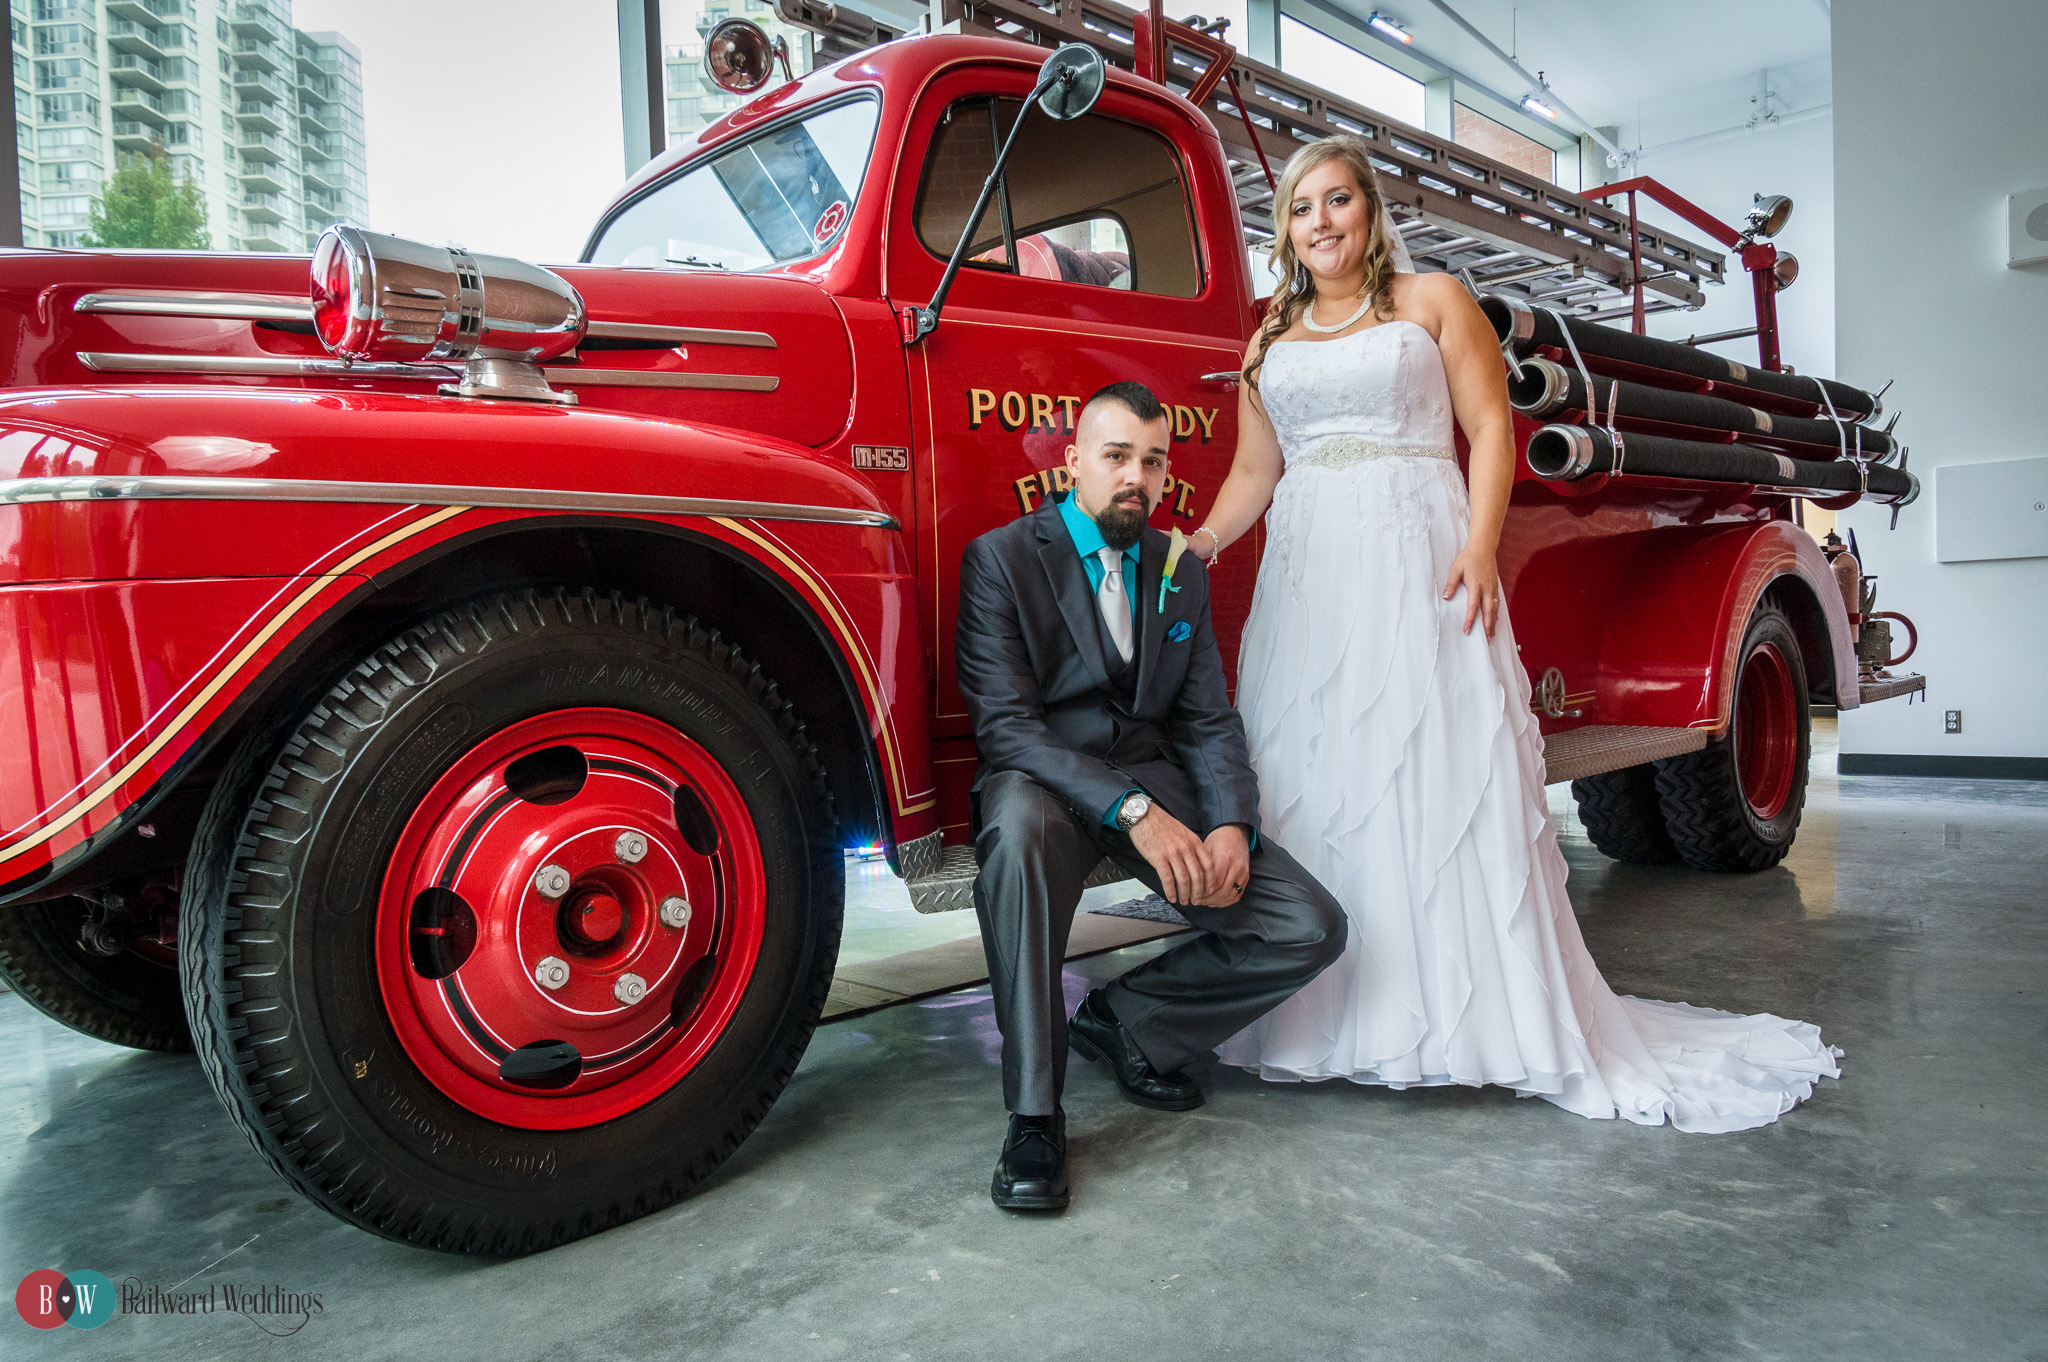 Bride and Groom posing beside red fire truck